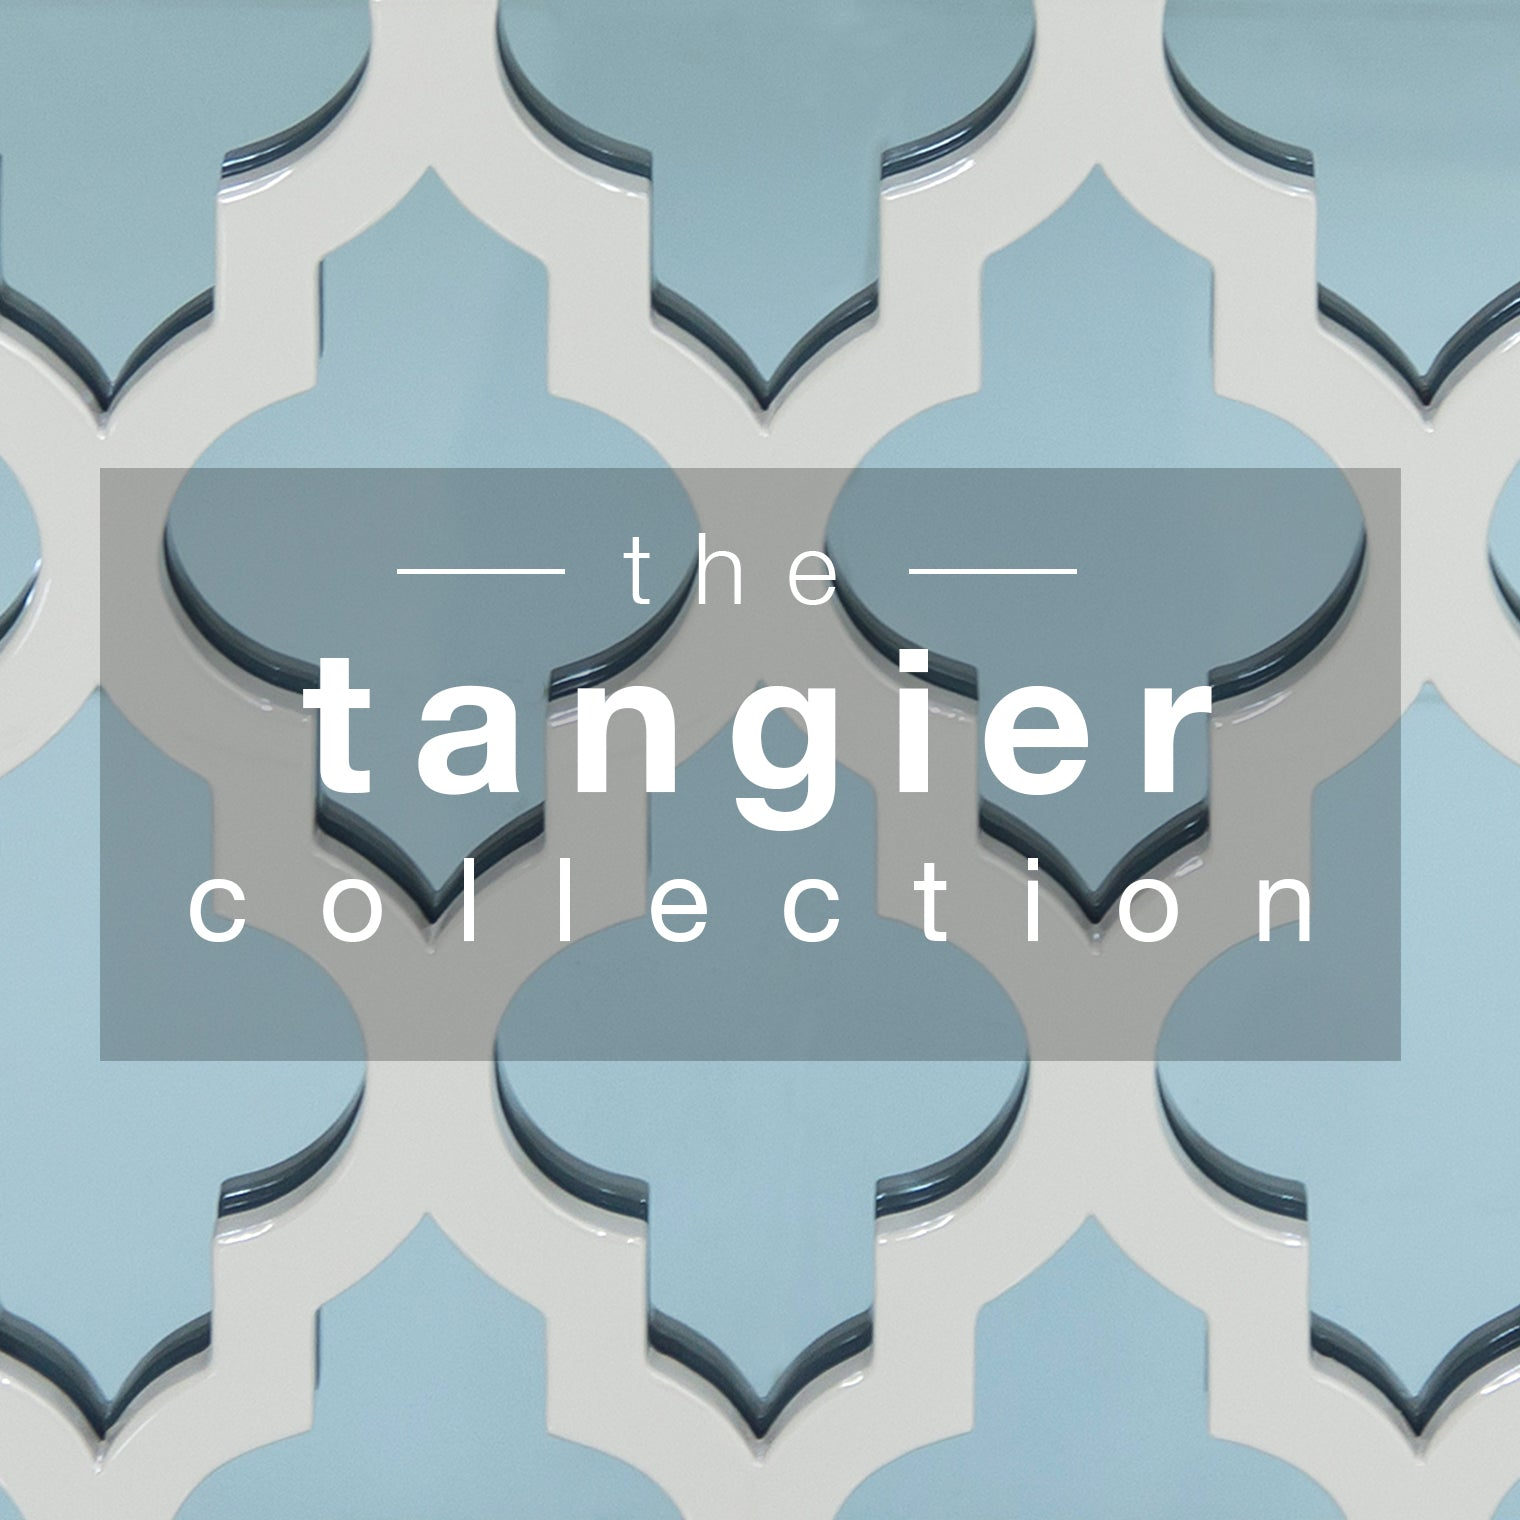 White and blue Moroccan-design background, shaded center rectangle with white letters spelling 'the Tangier Collection'